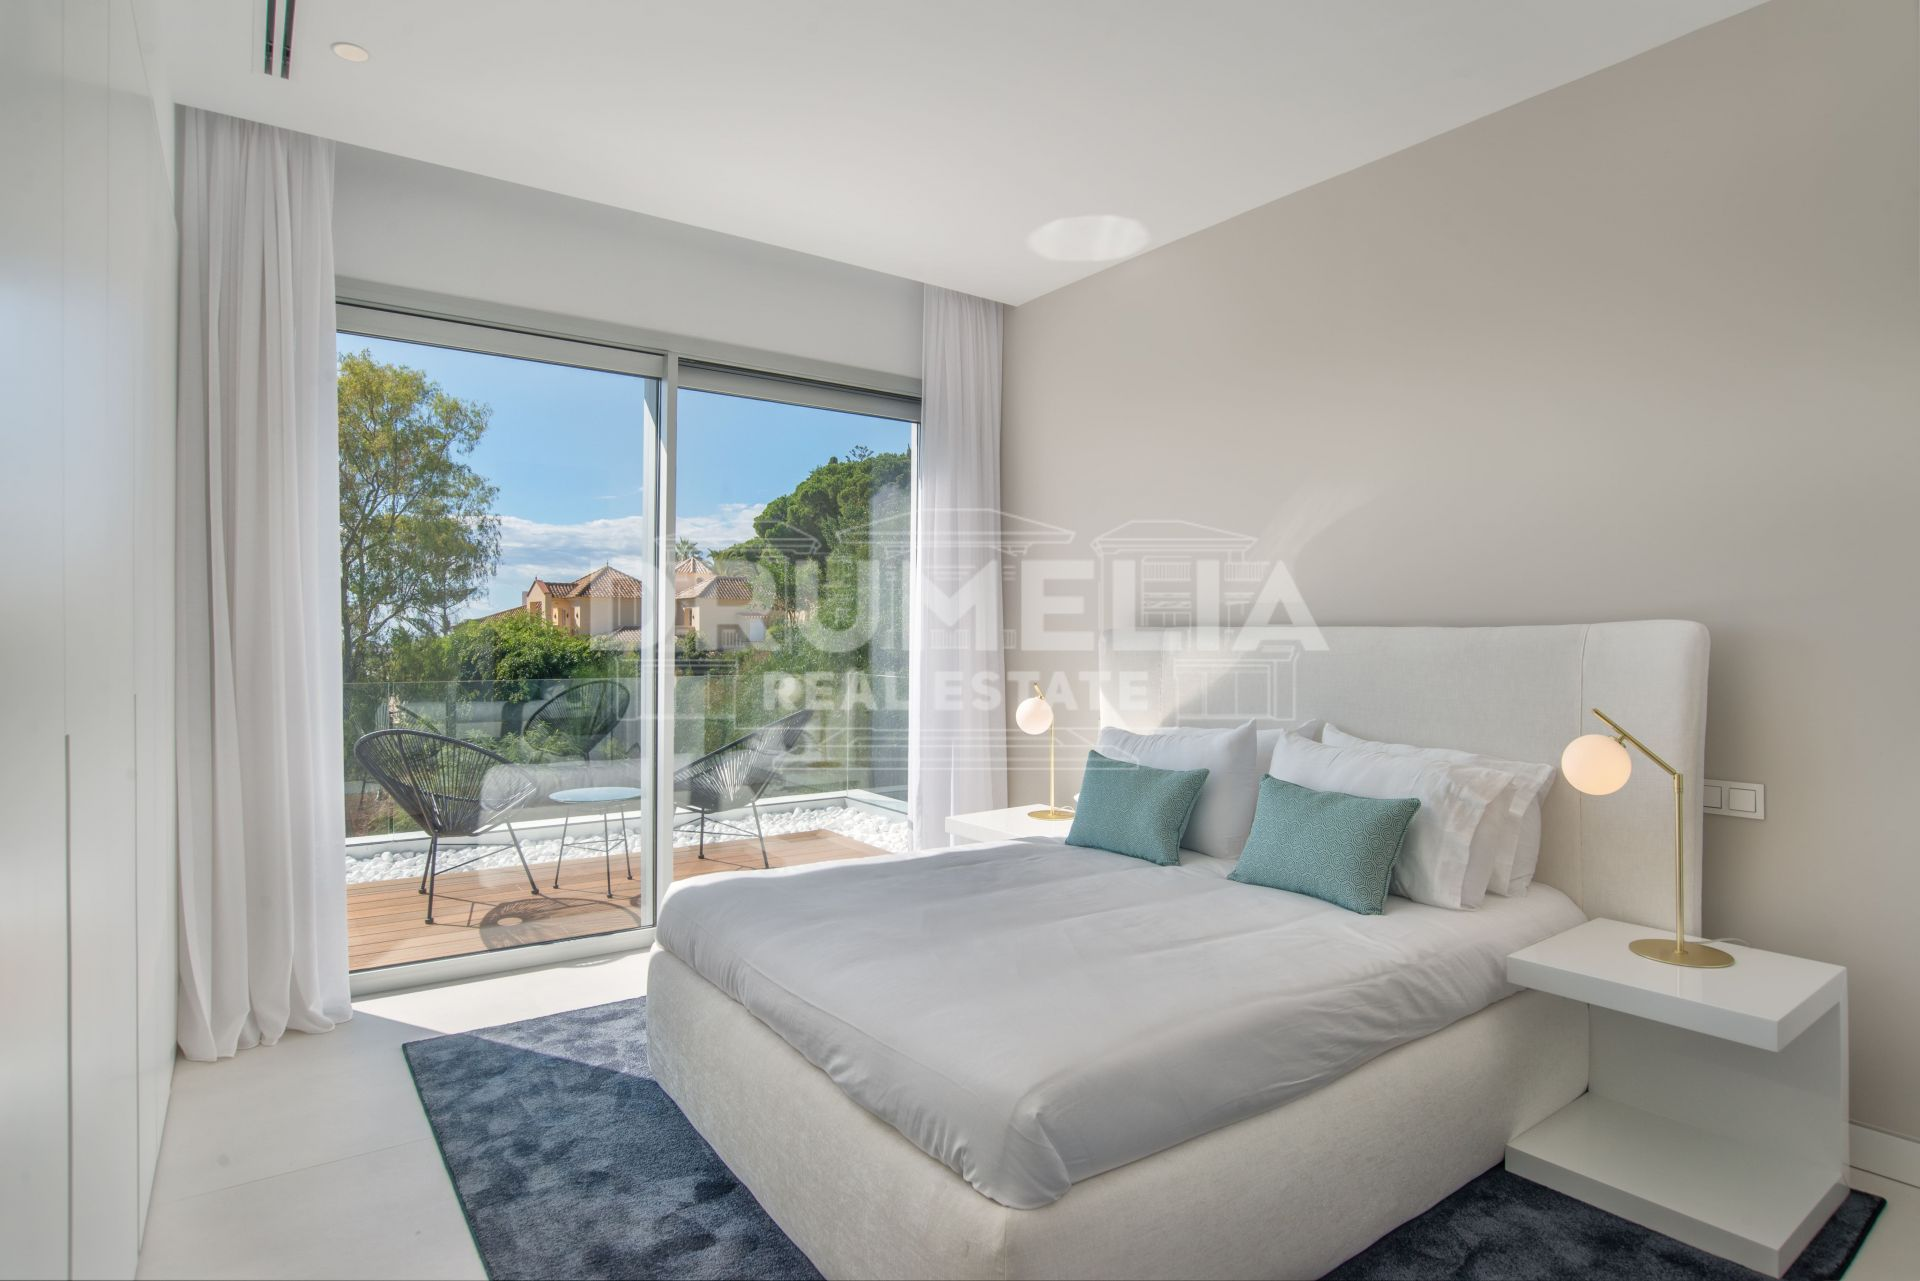 Benahavis, Elegant Luxury Villa of Contemporary Design in Mirador del Paraiso, Benahavis